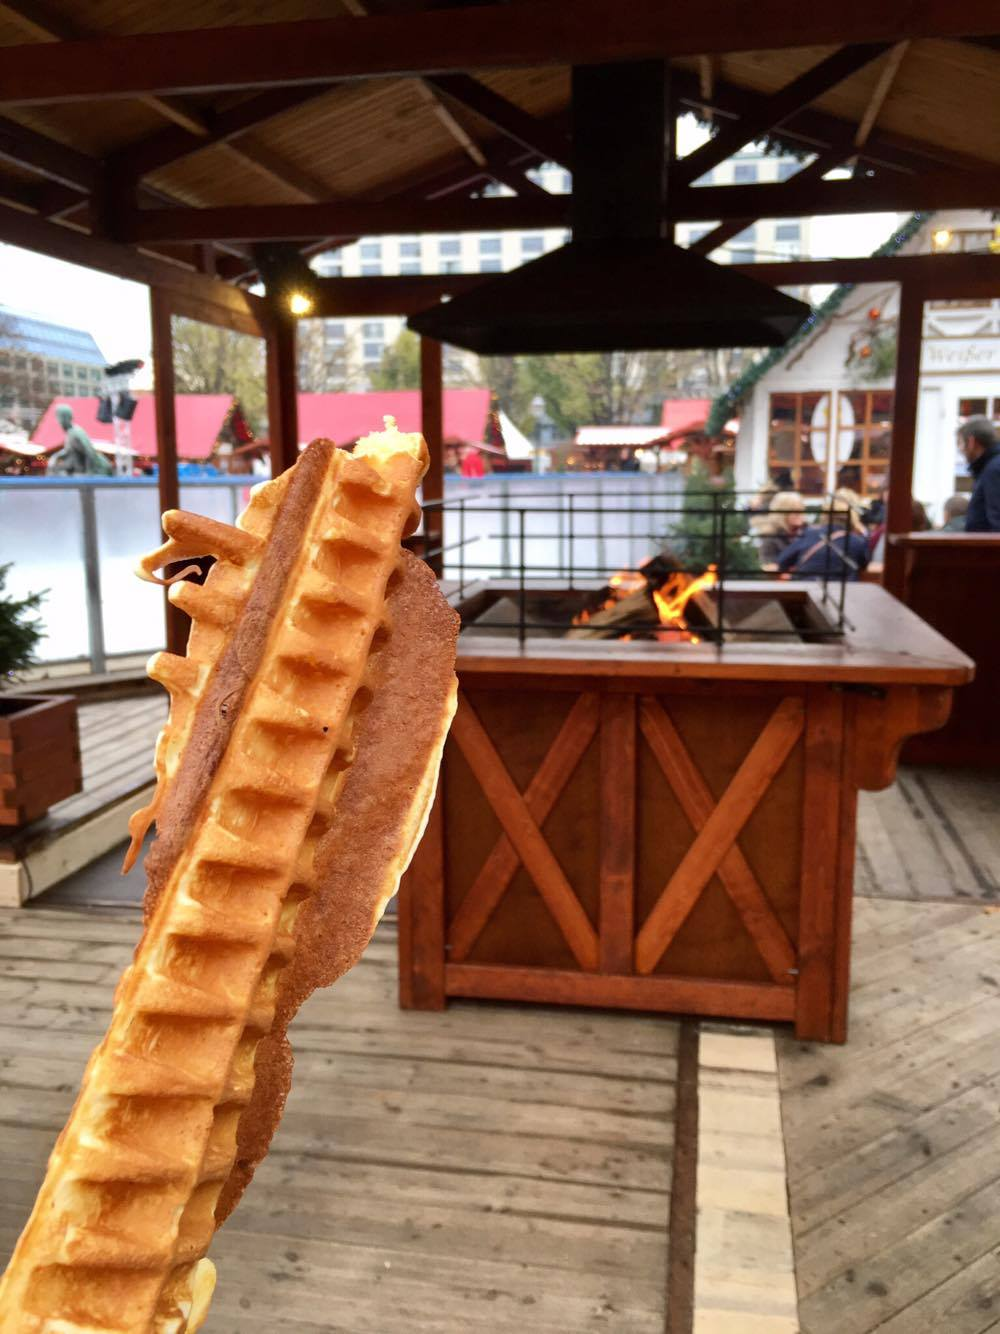 Waffles by a fire? Nothing better.